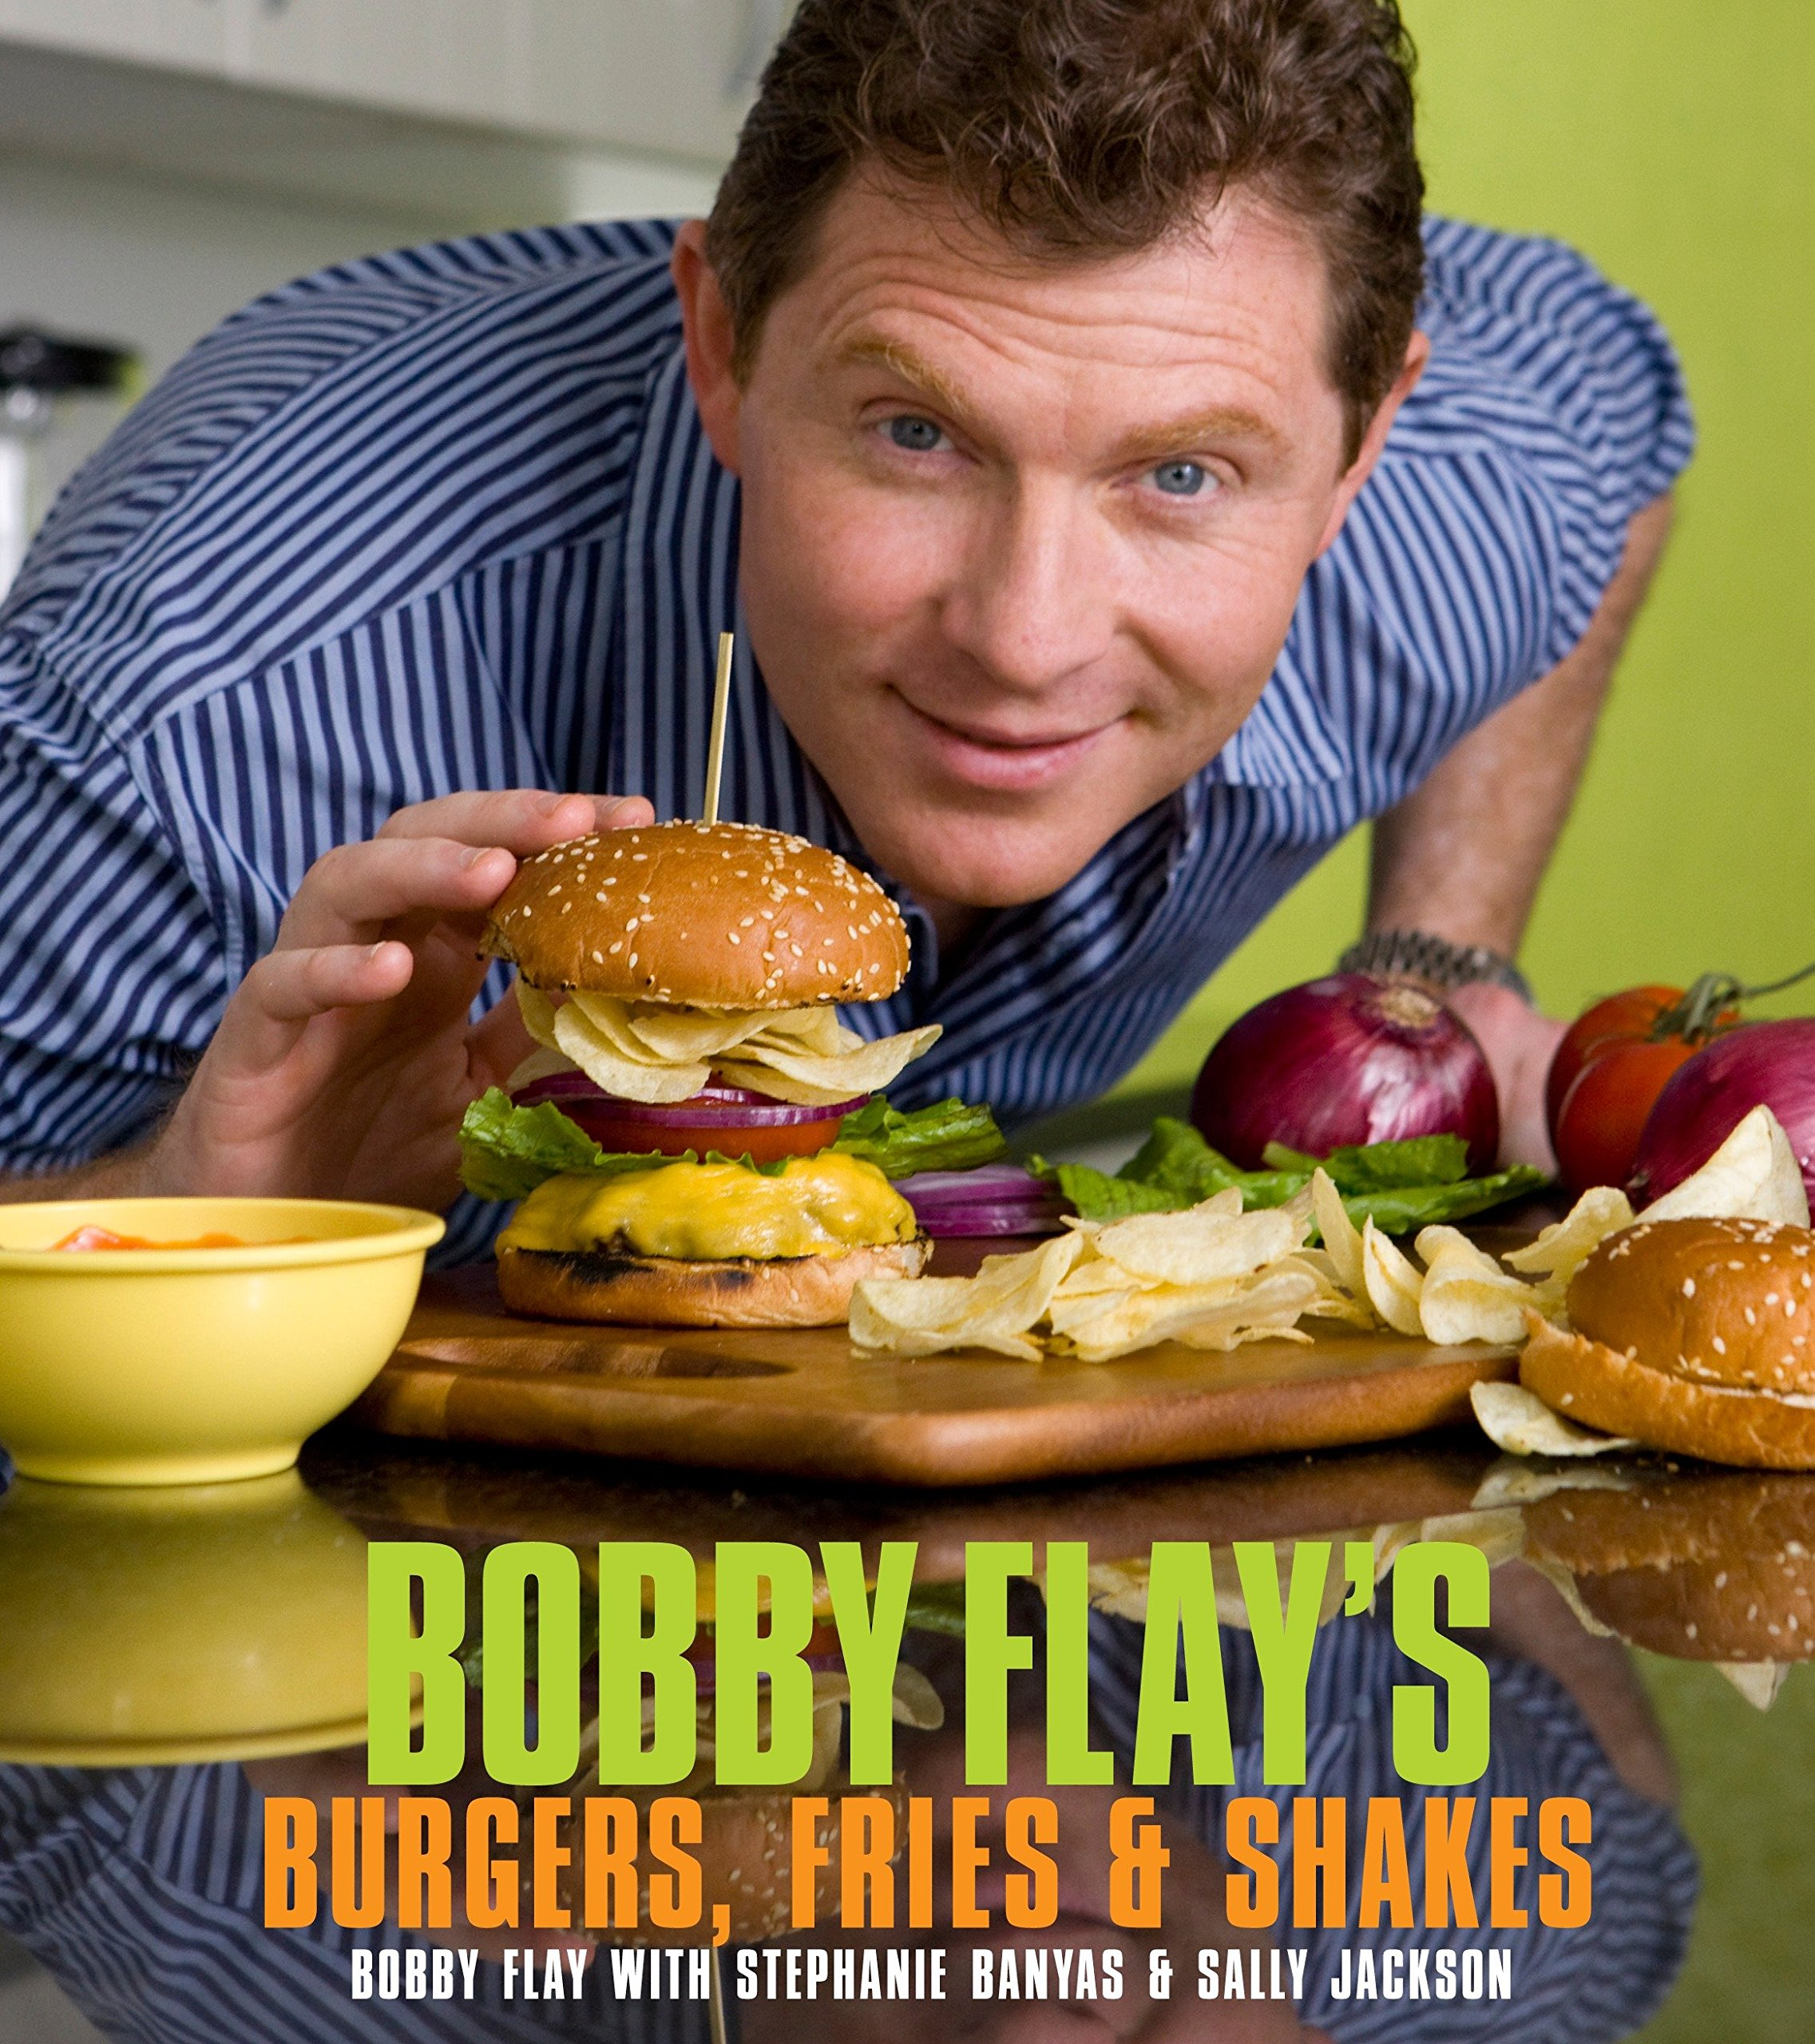 Bobby Flay S Burgers Fries And Shakes A Cookbook Flay Bobby Banyas Stephanie Jackson Sally 9780307460639 Amazon Com Books